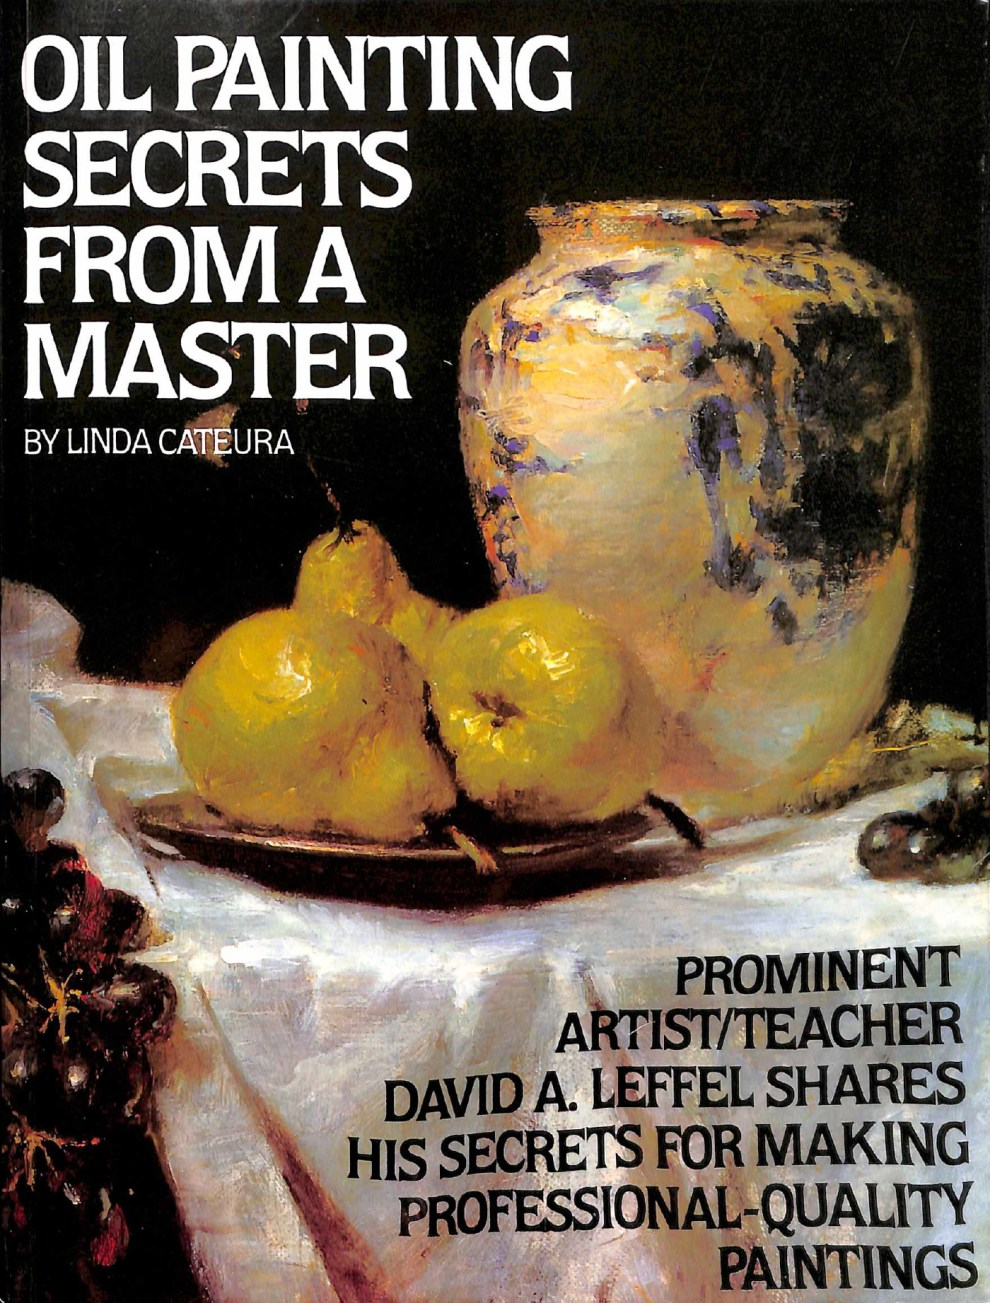 Book: Oil Painting Secrets From A Master, 1984